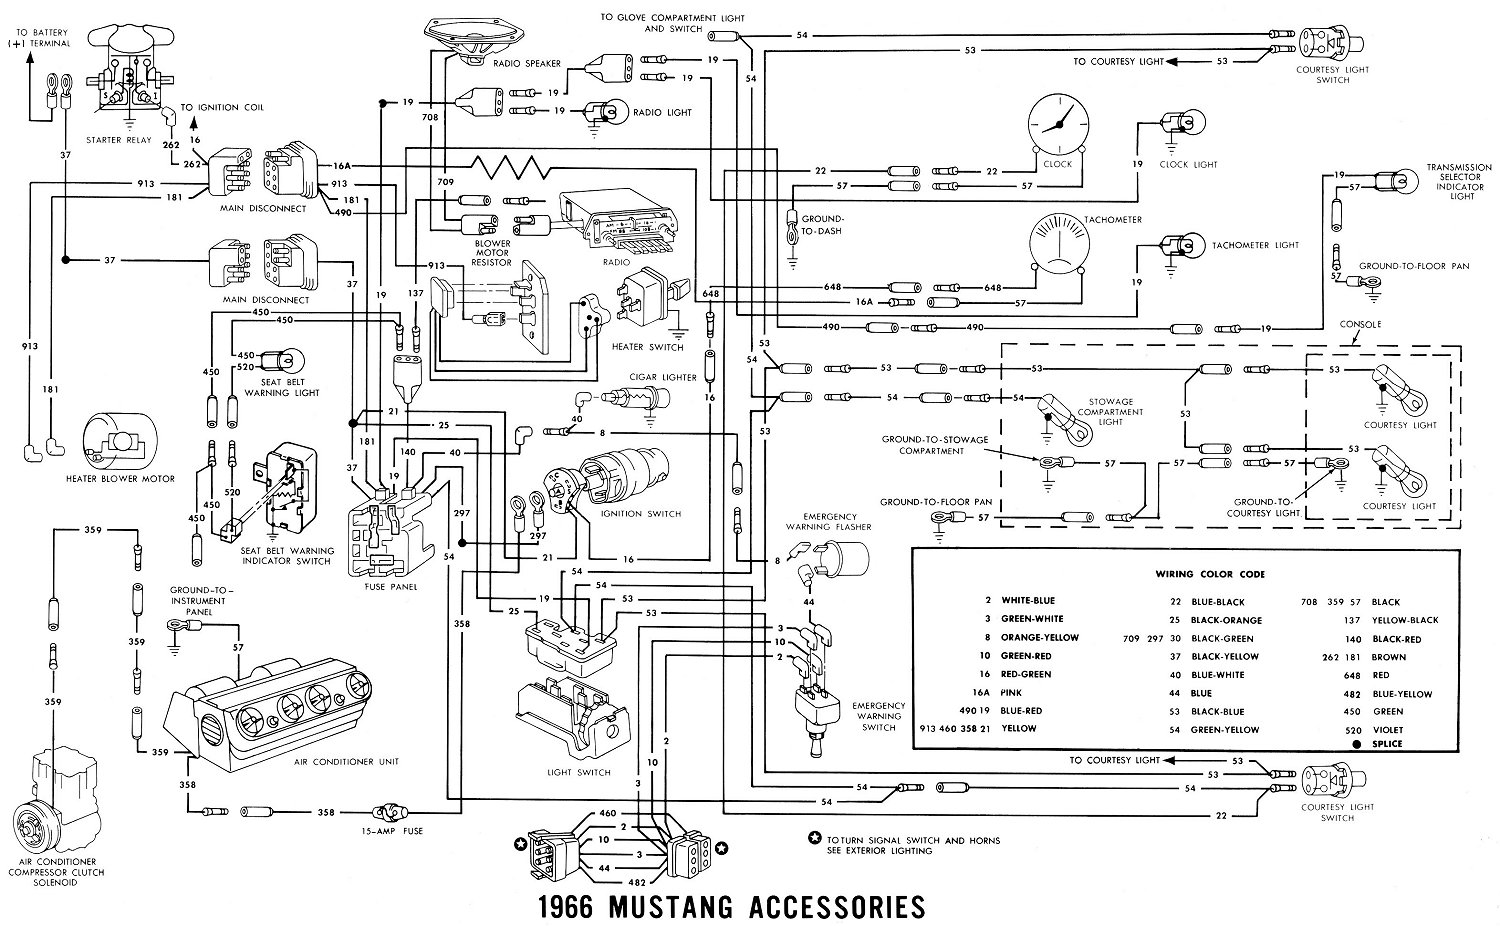 1966 Mustang Wiring Diagrams on 2010 jeep wrangler dash radio